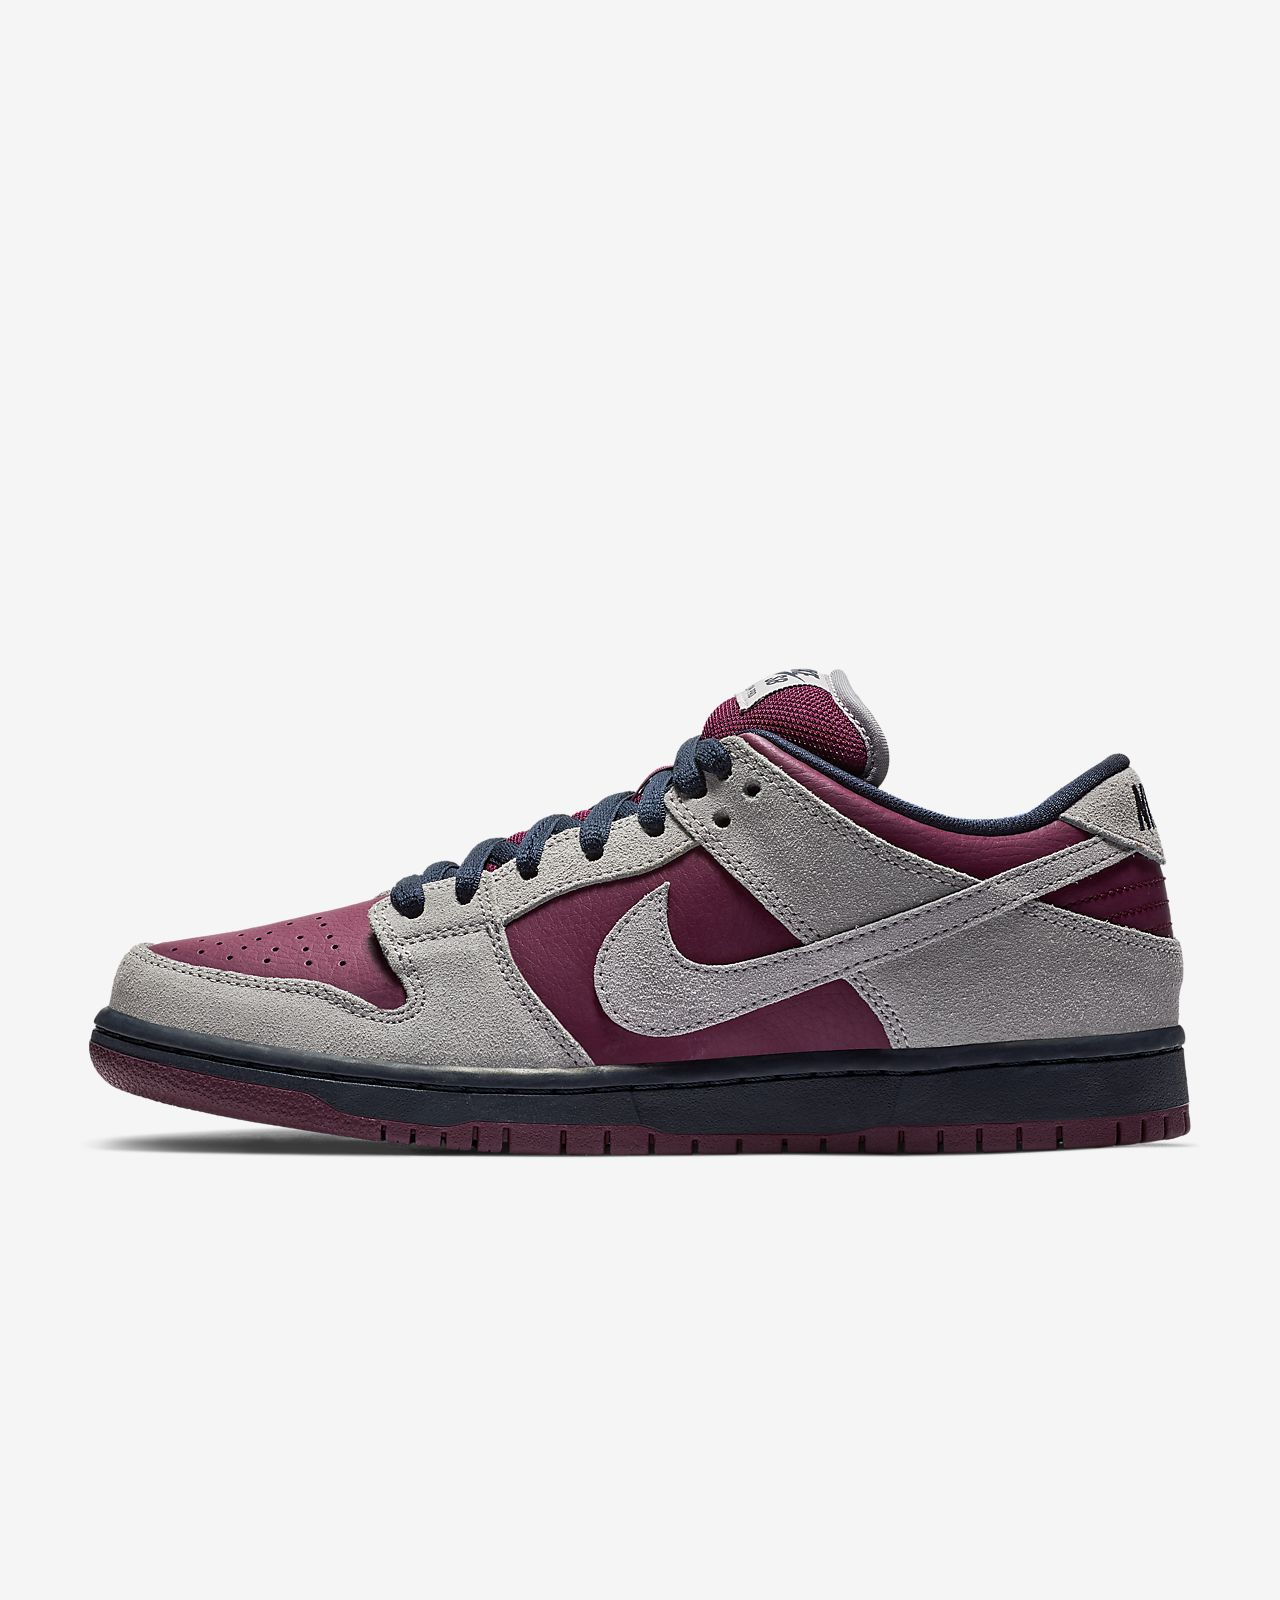 big sale 70e00 cdde7 ... Nike SB Dunk Low Pro Skate Shoe